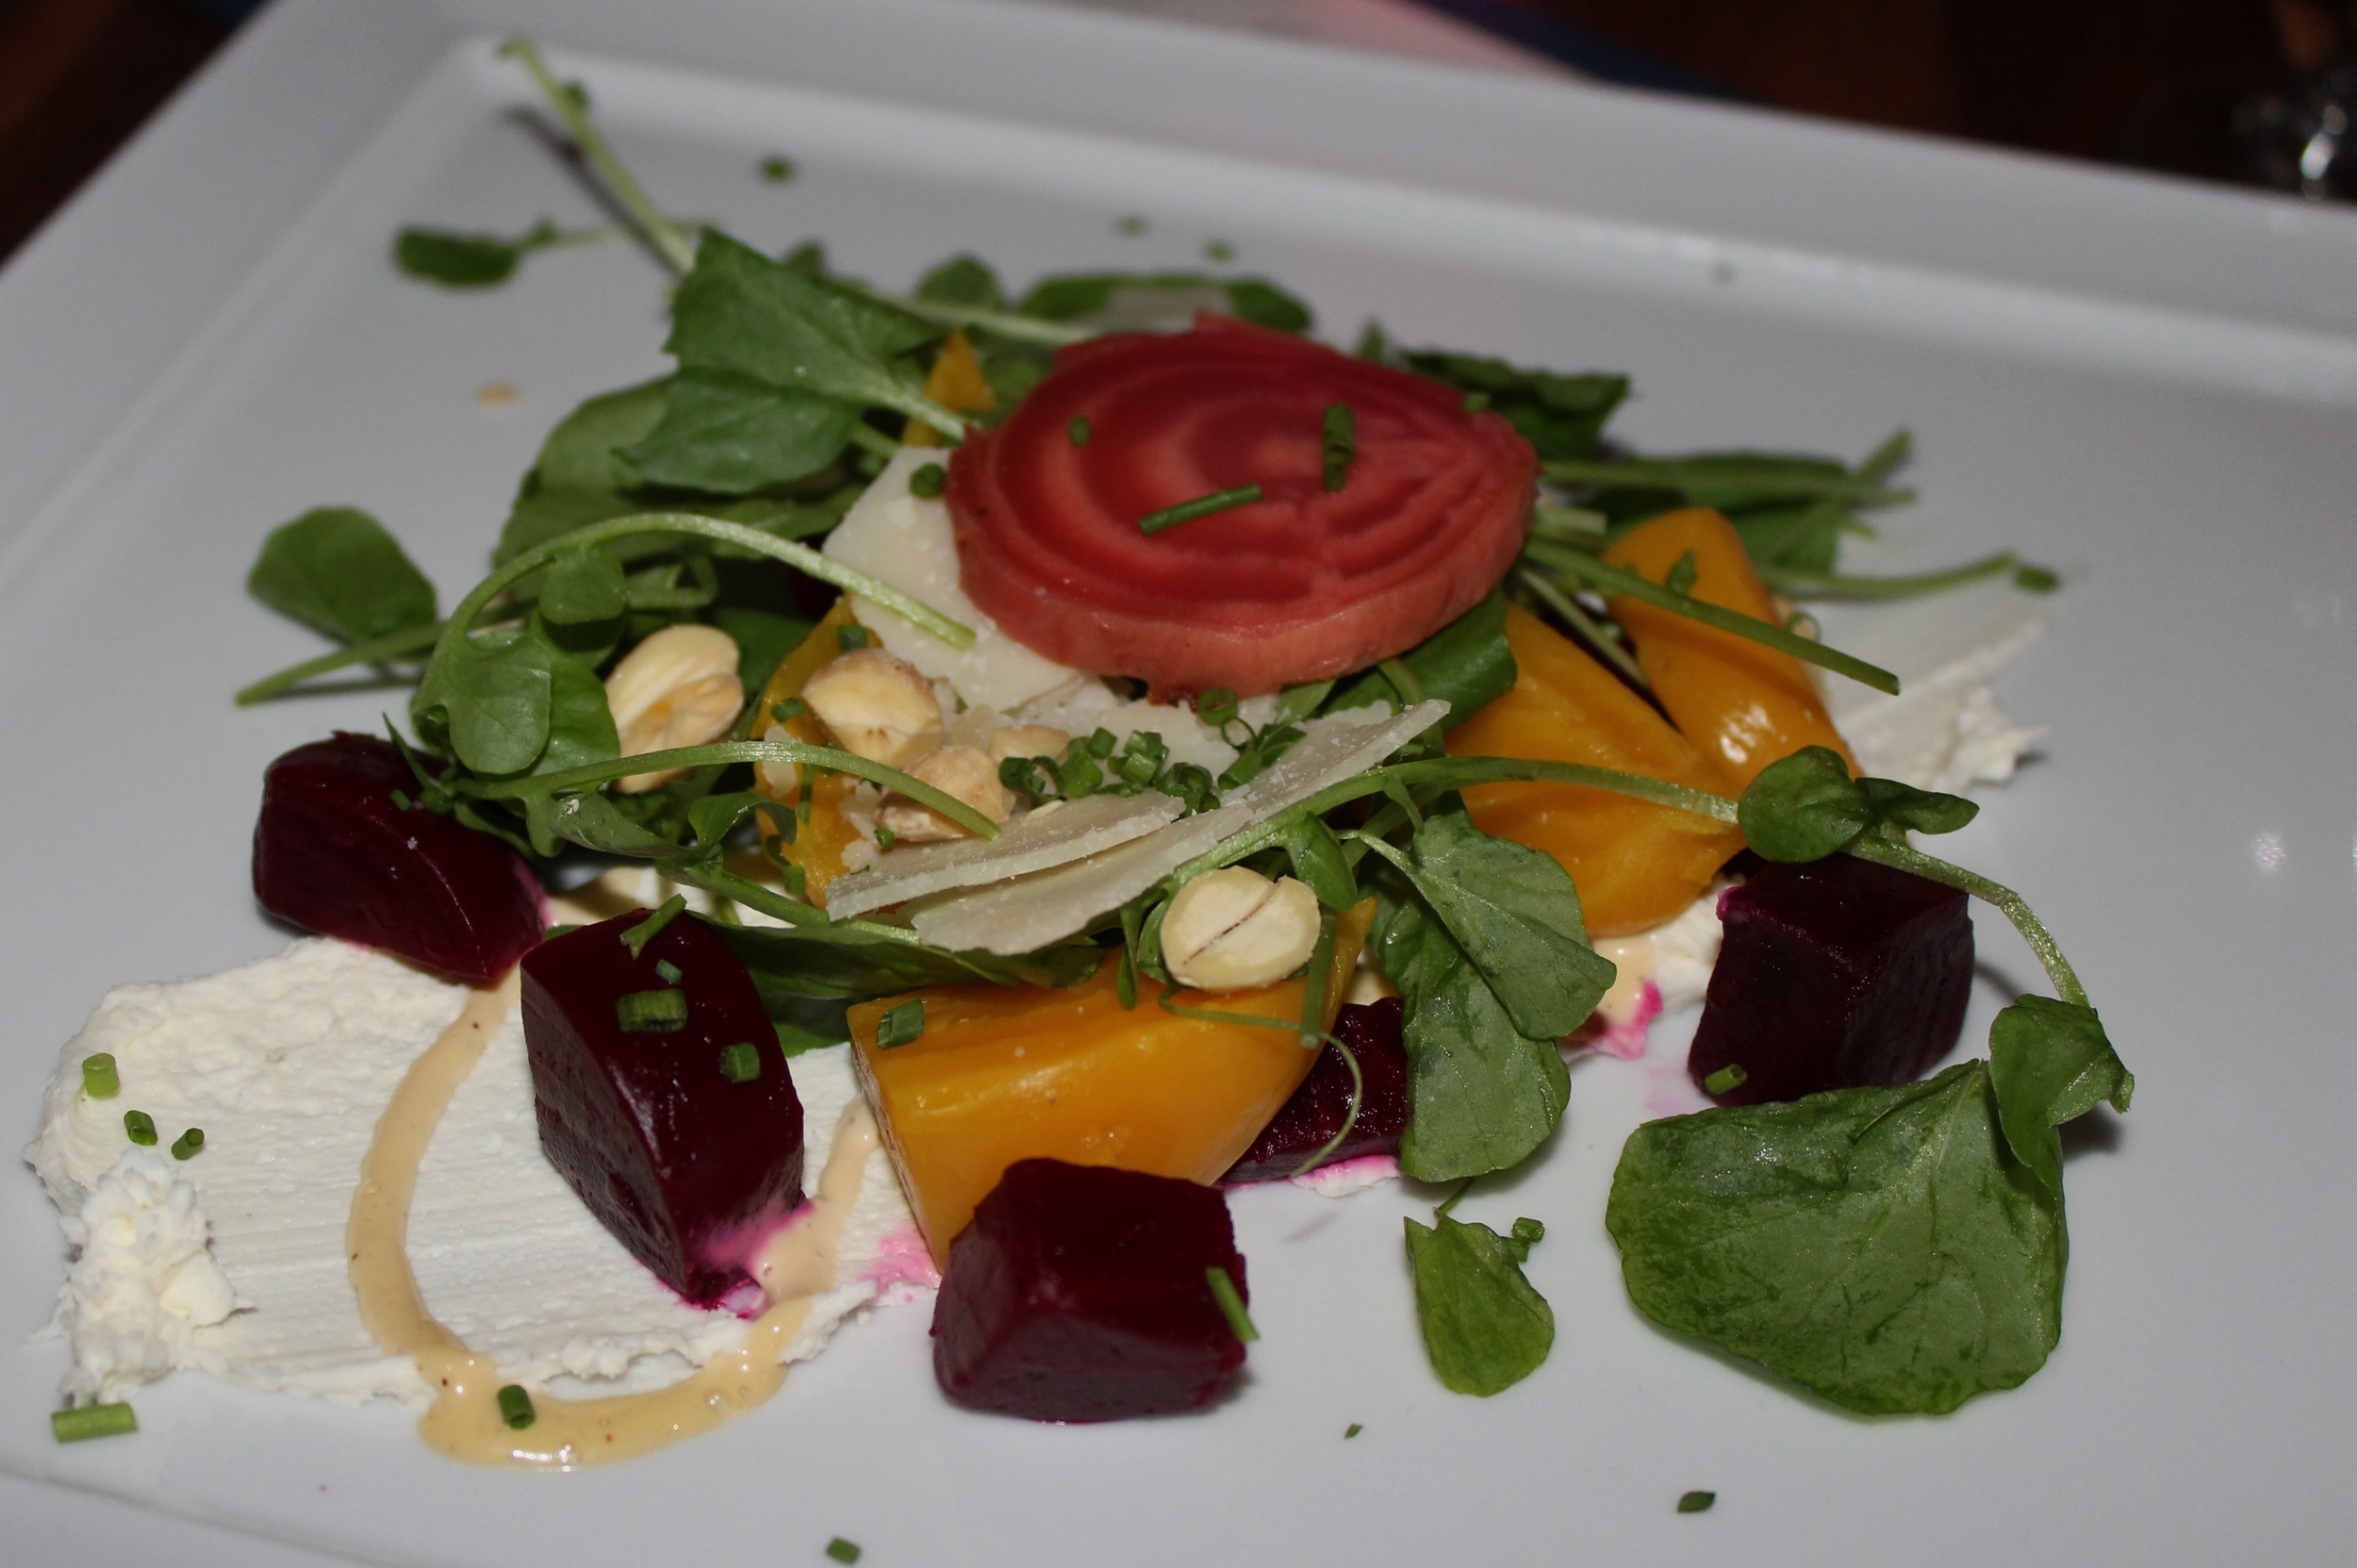 beets with watercress, Marcona almonds, creamy mascarpone, parmesan, and maple-sherry vinaigrette.